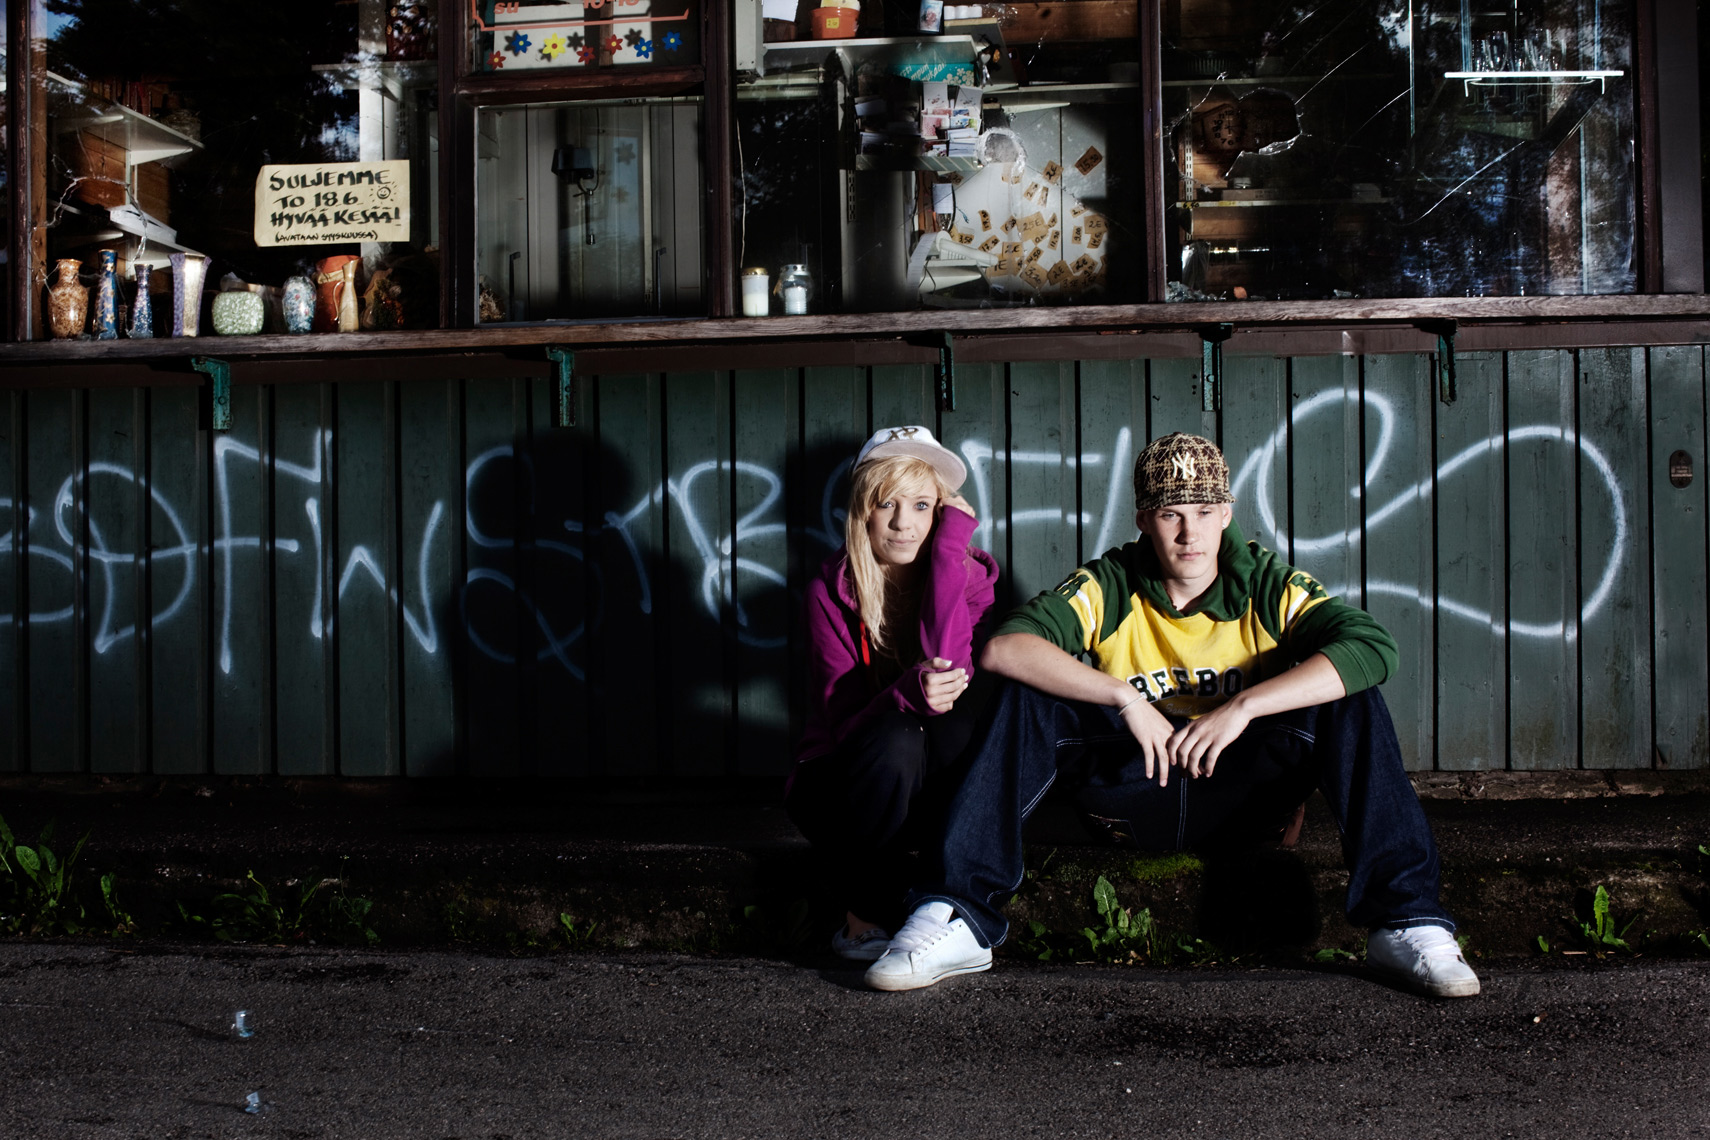 Finnish Teens // Documentary Photo // Aki-Pekka Sinikoski, Photographer from Helsinki, Finland